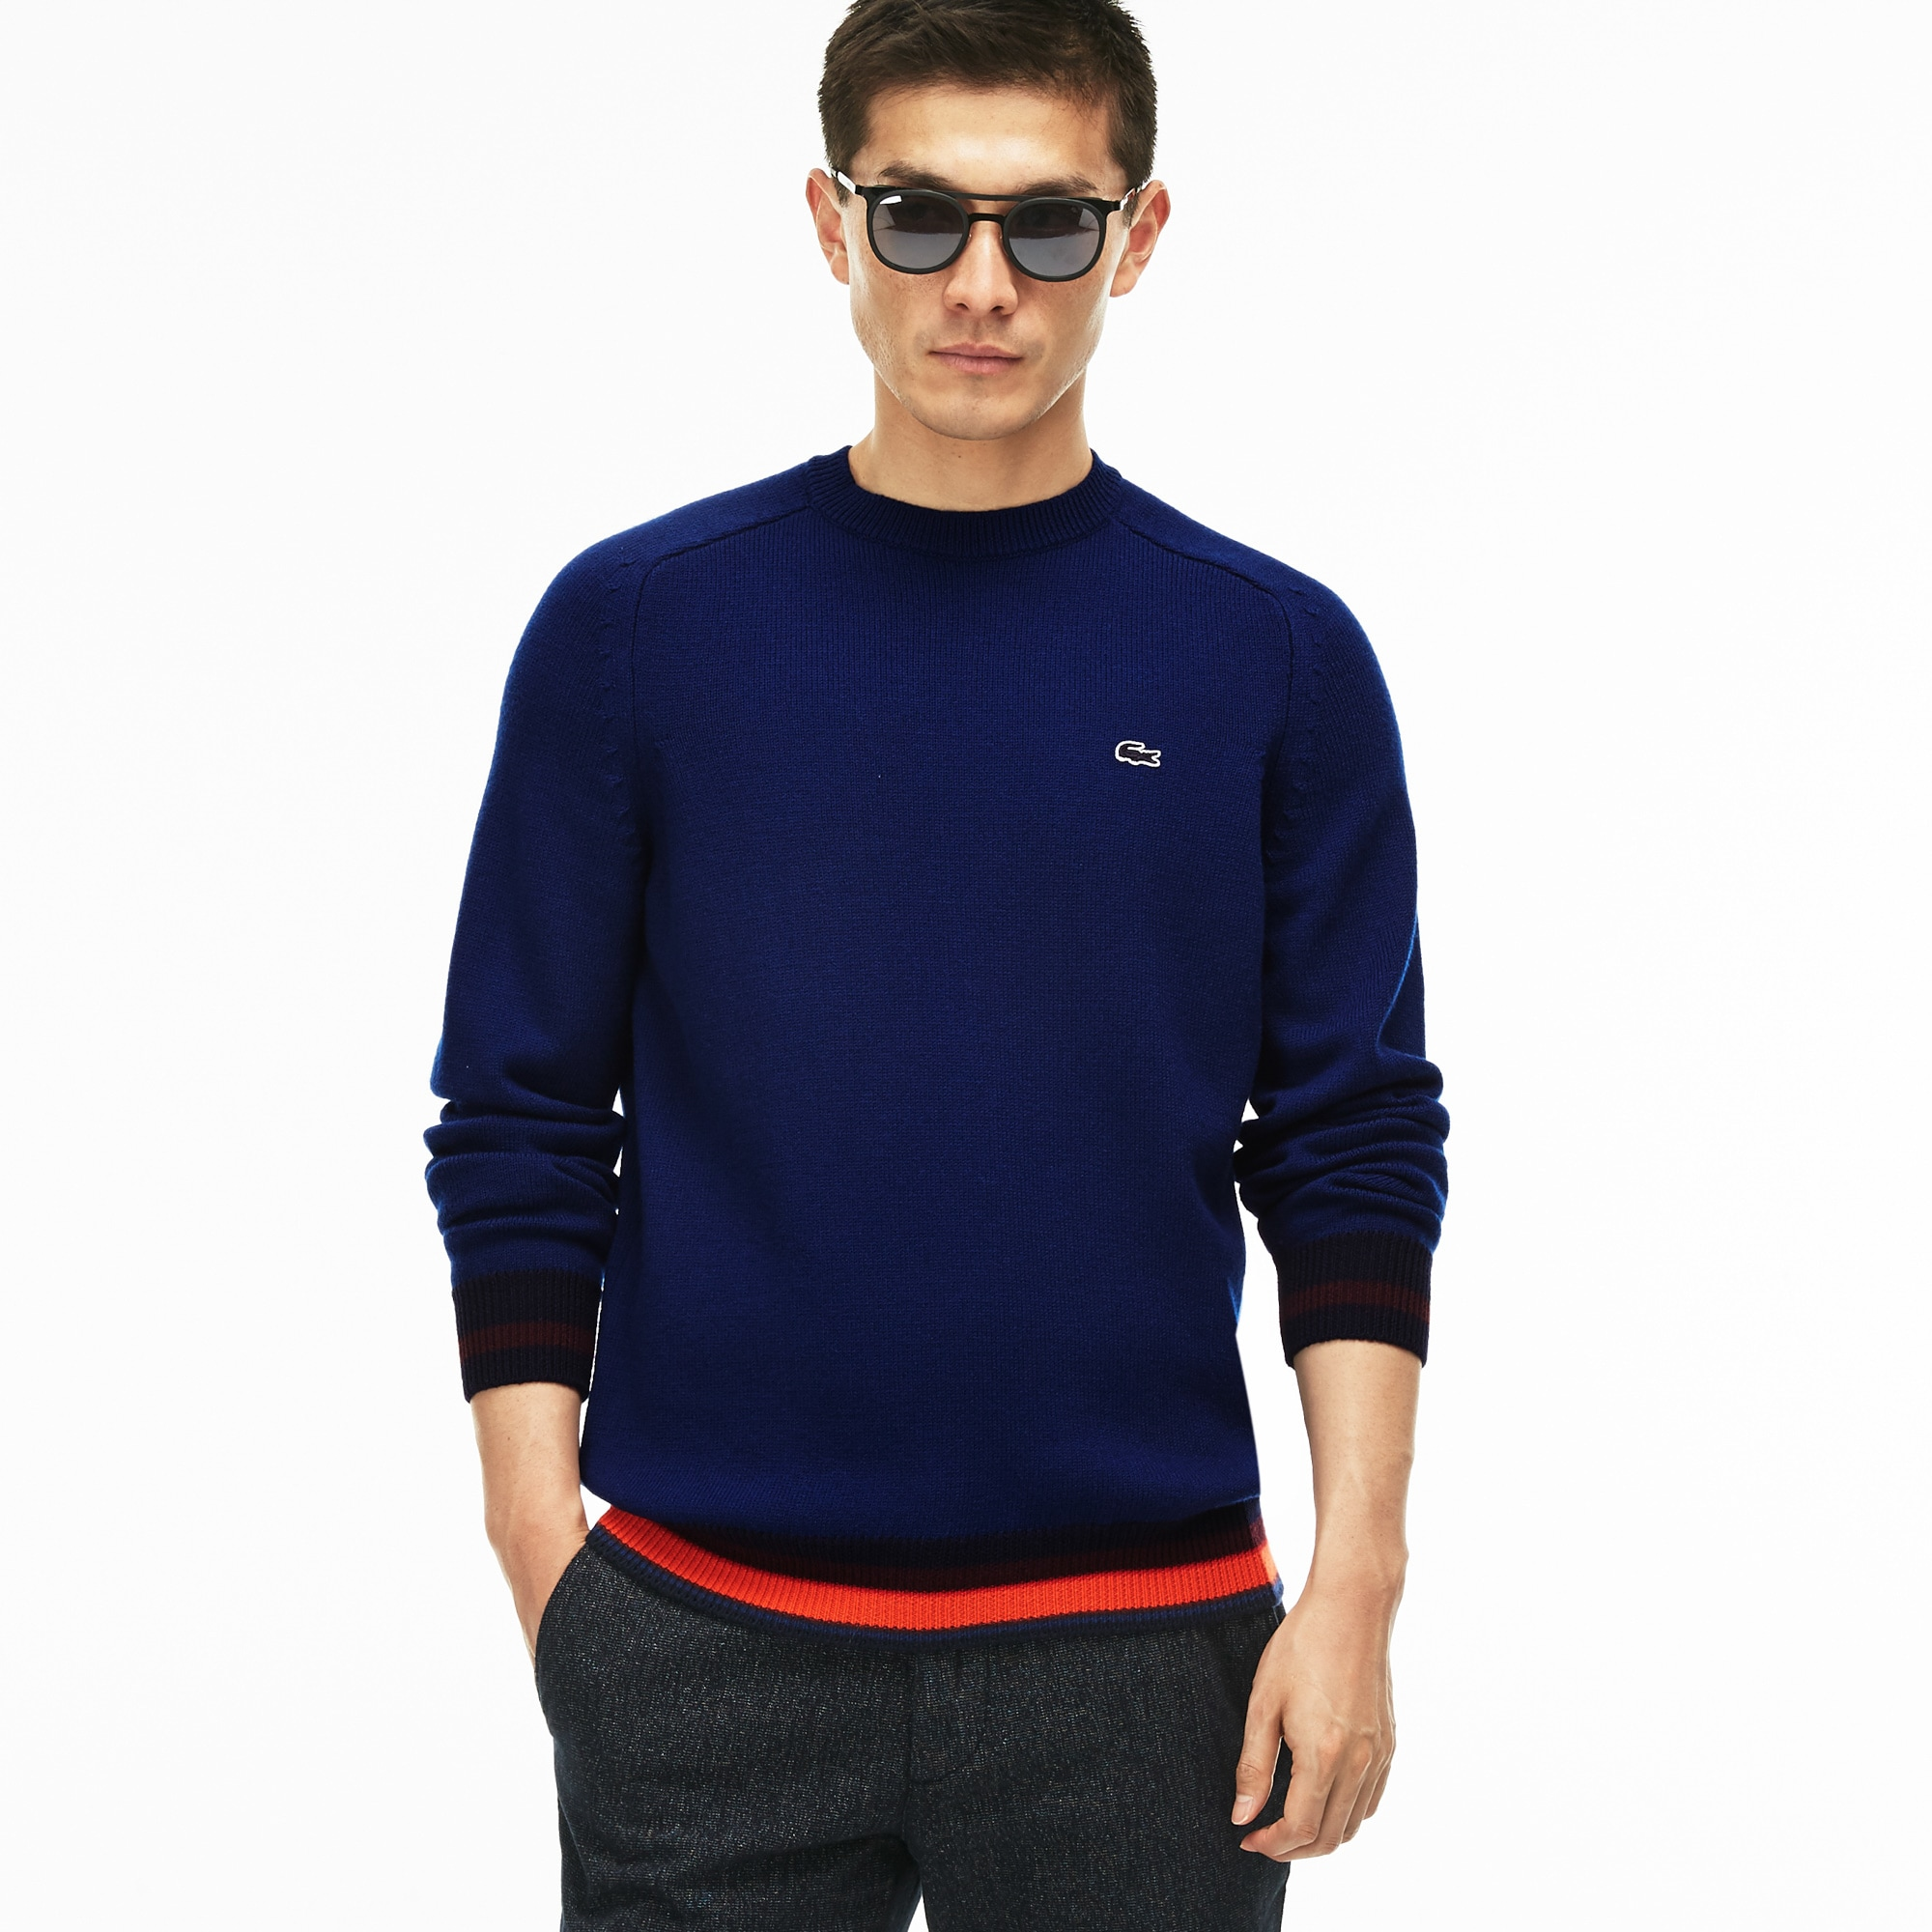 Men's Crew Neck Wool Jersey Sweater With Striped Accents